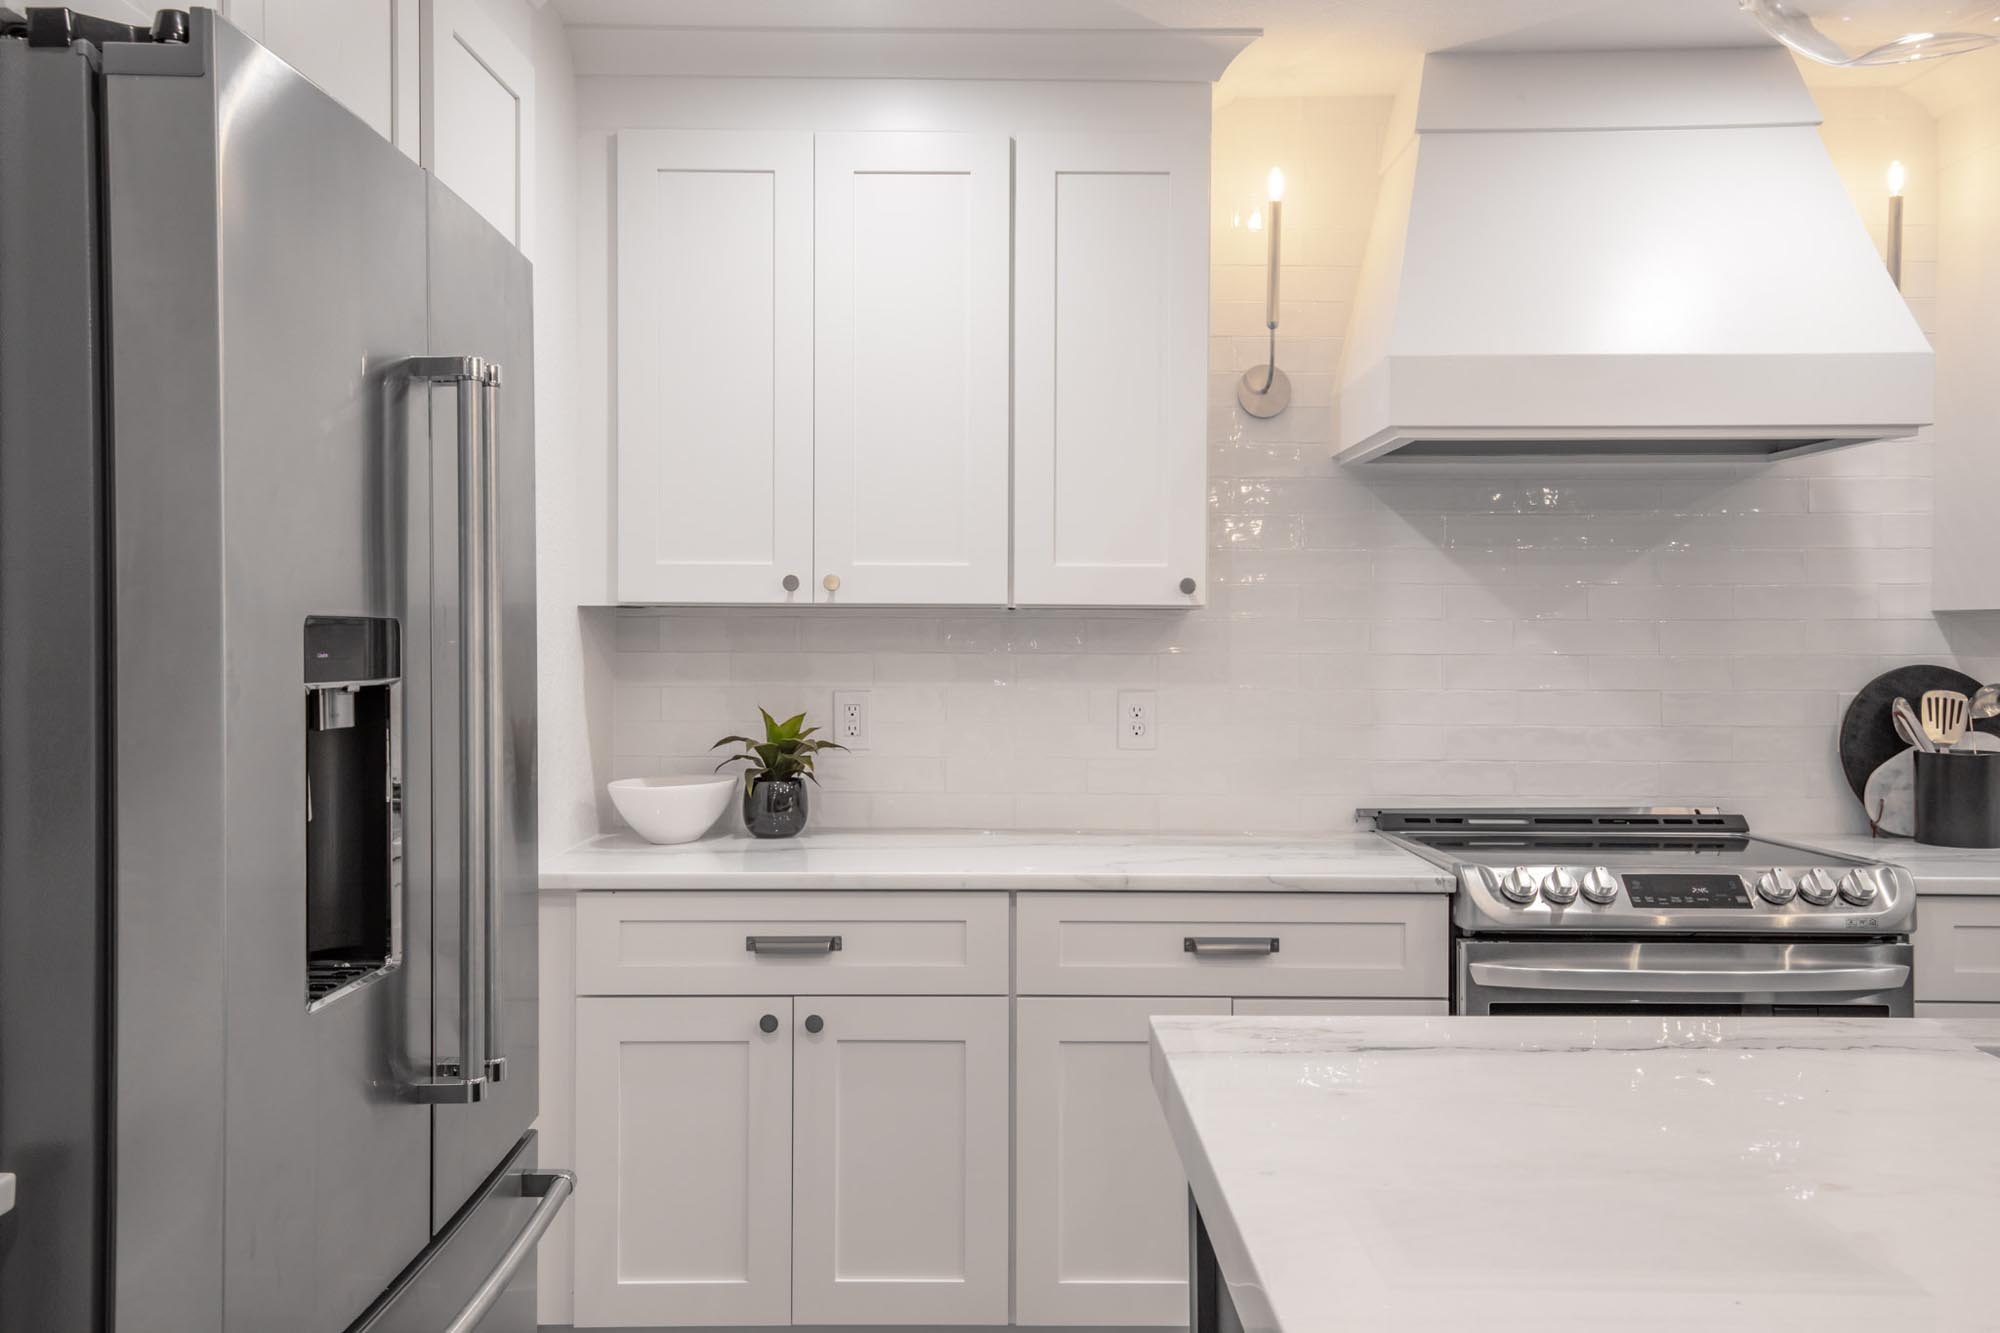 Kitchen with candle like lights and plant on white countertops